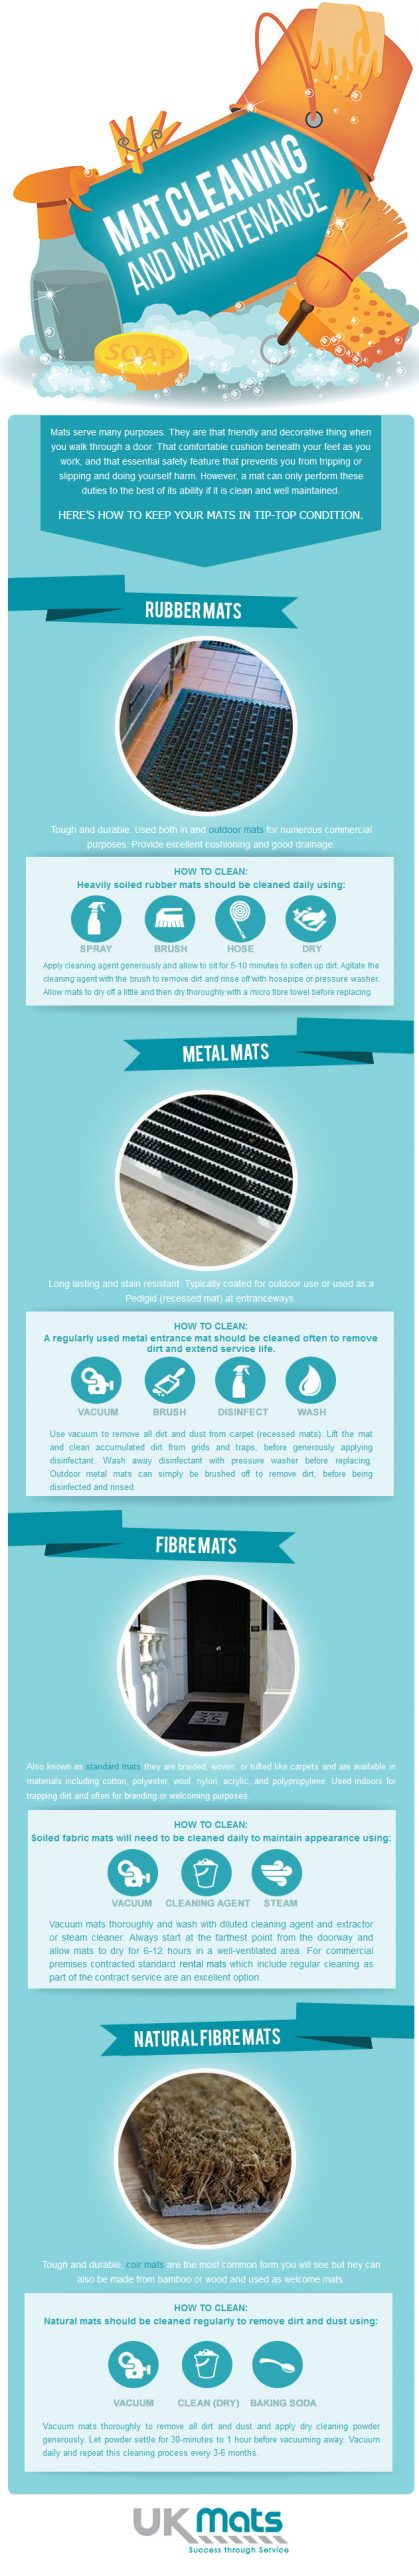 mat cleaning and maintenance infographic – UK Mats